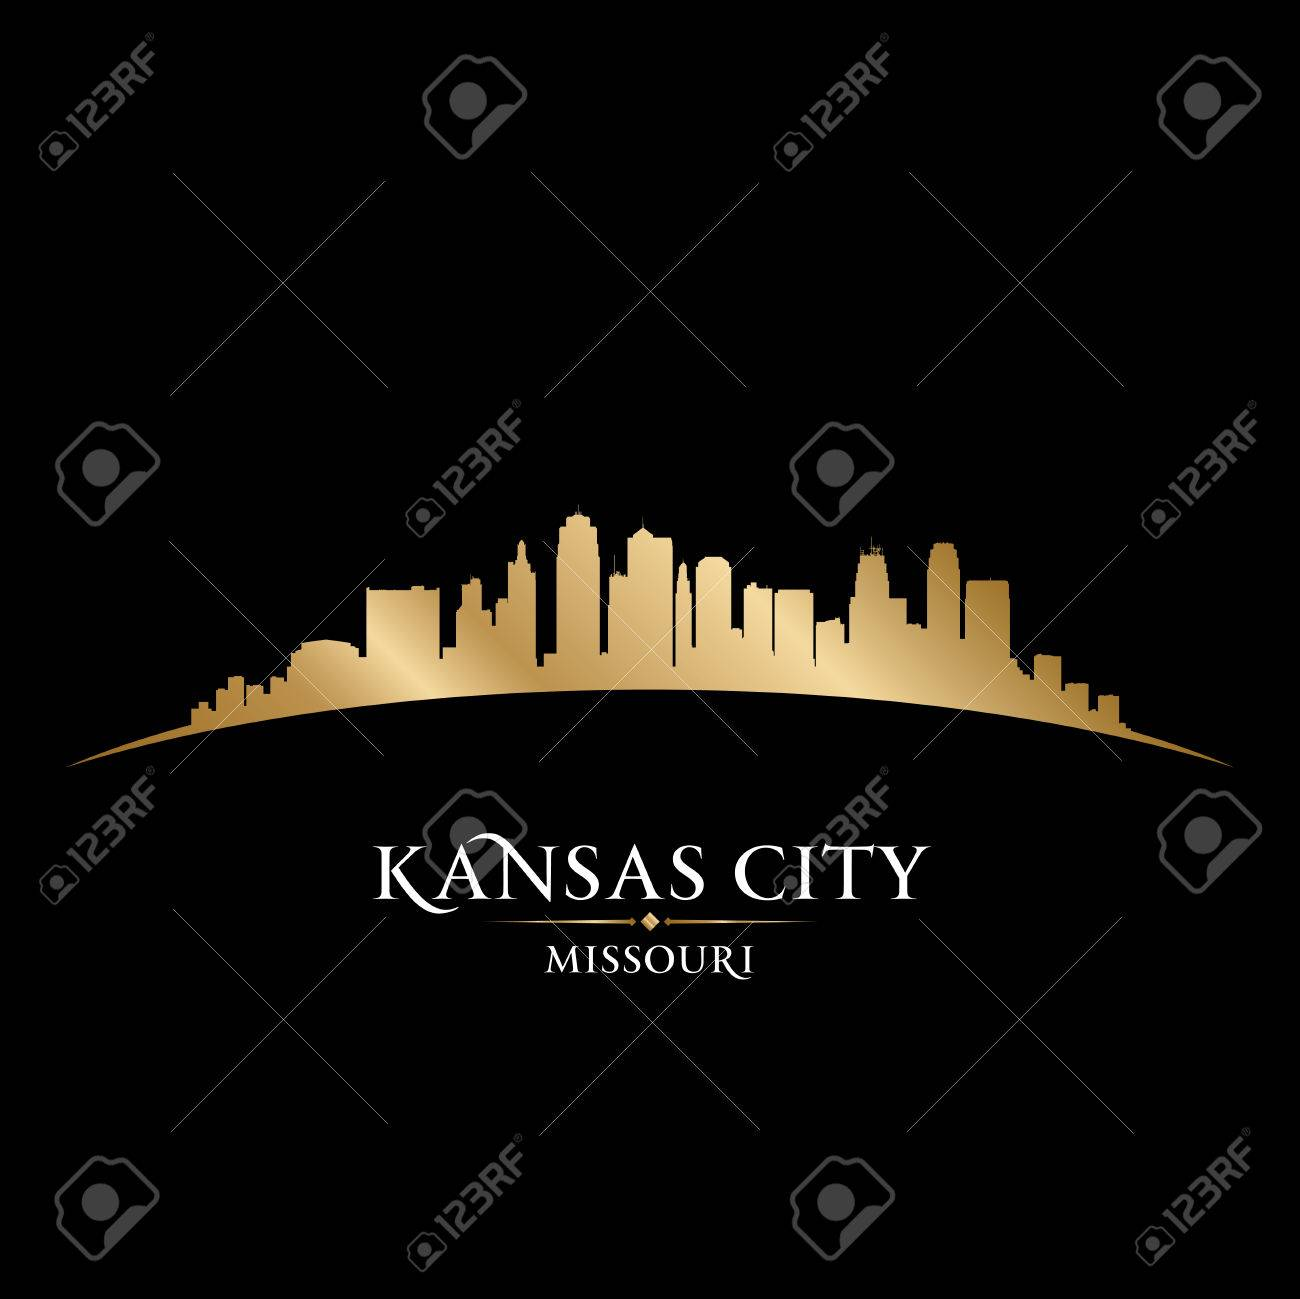 Kansas city Missouri skyline silhouette. Vector illustration Stock Vector - 22726530